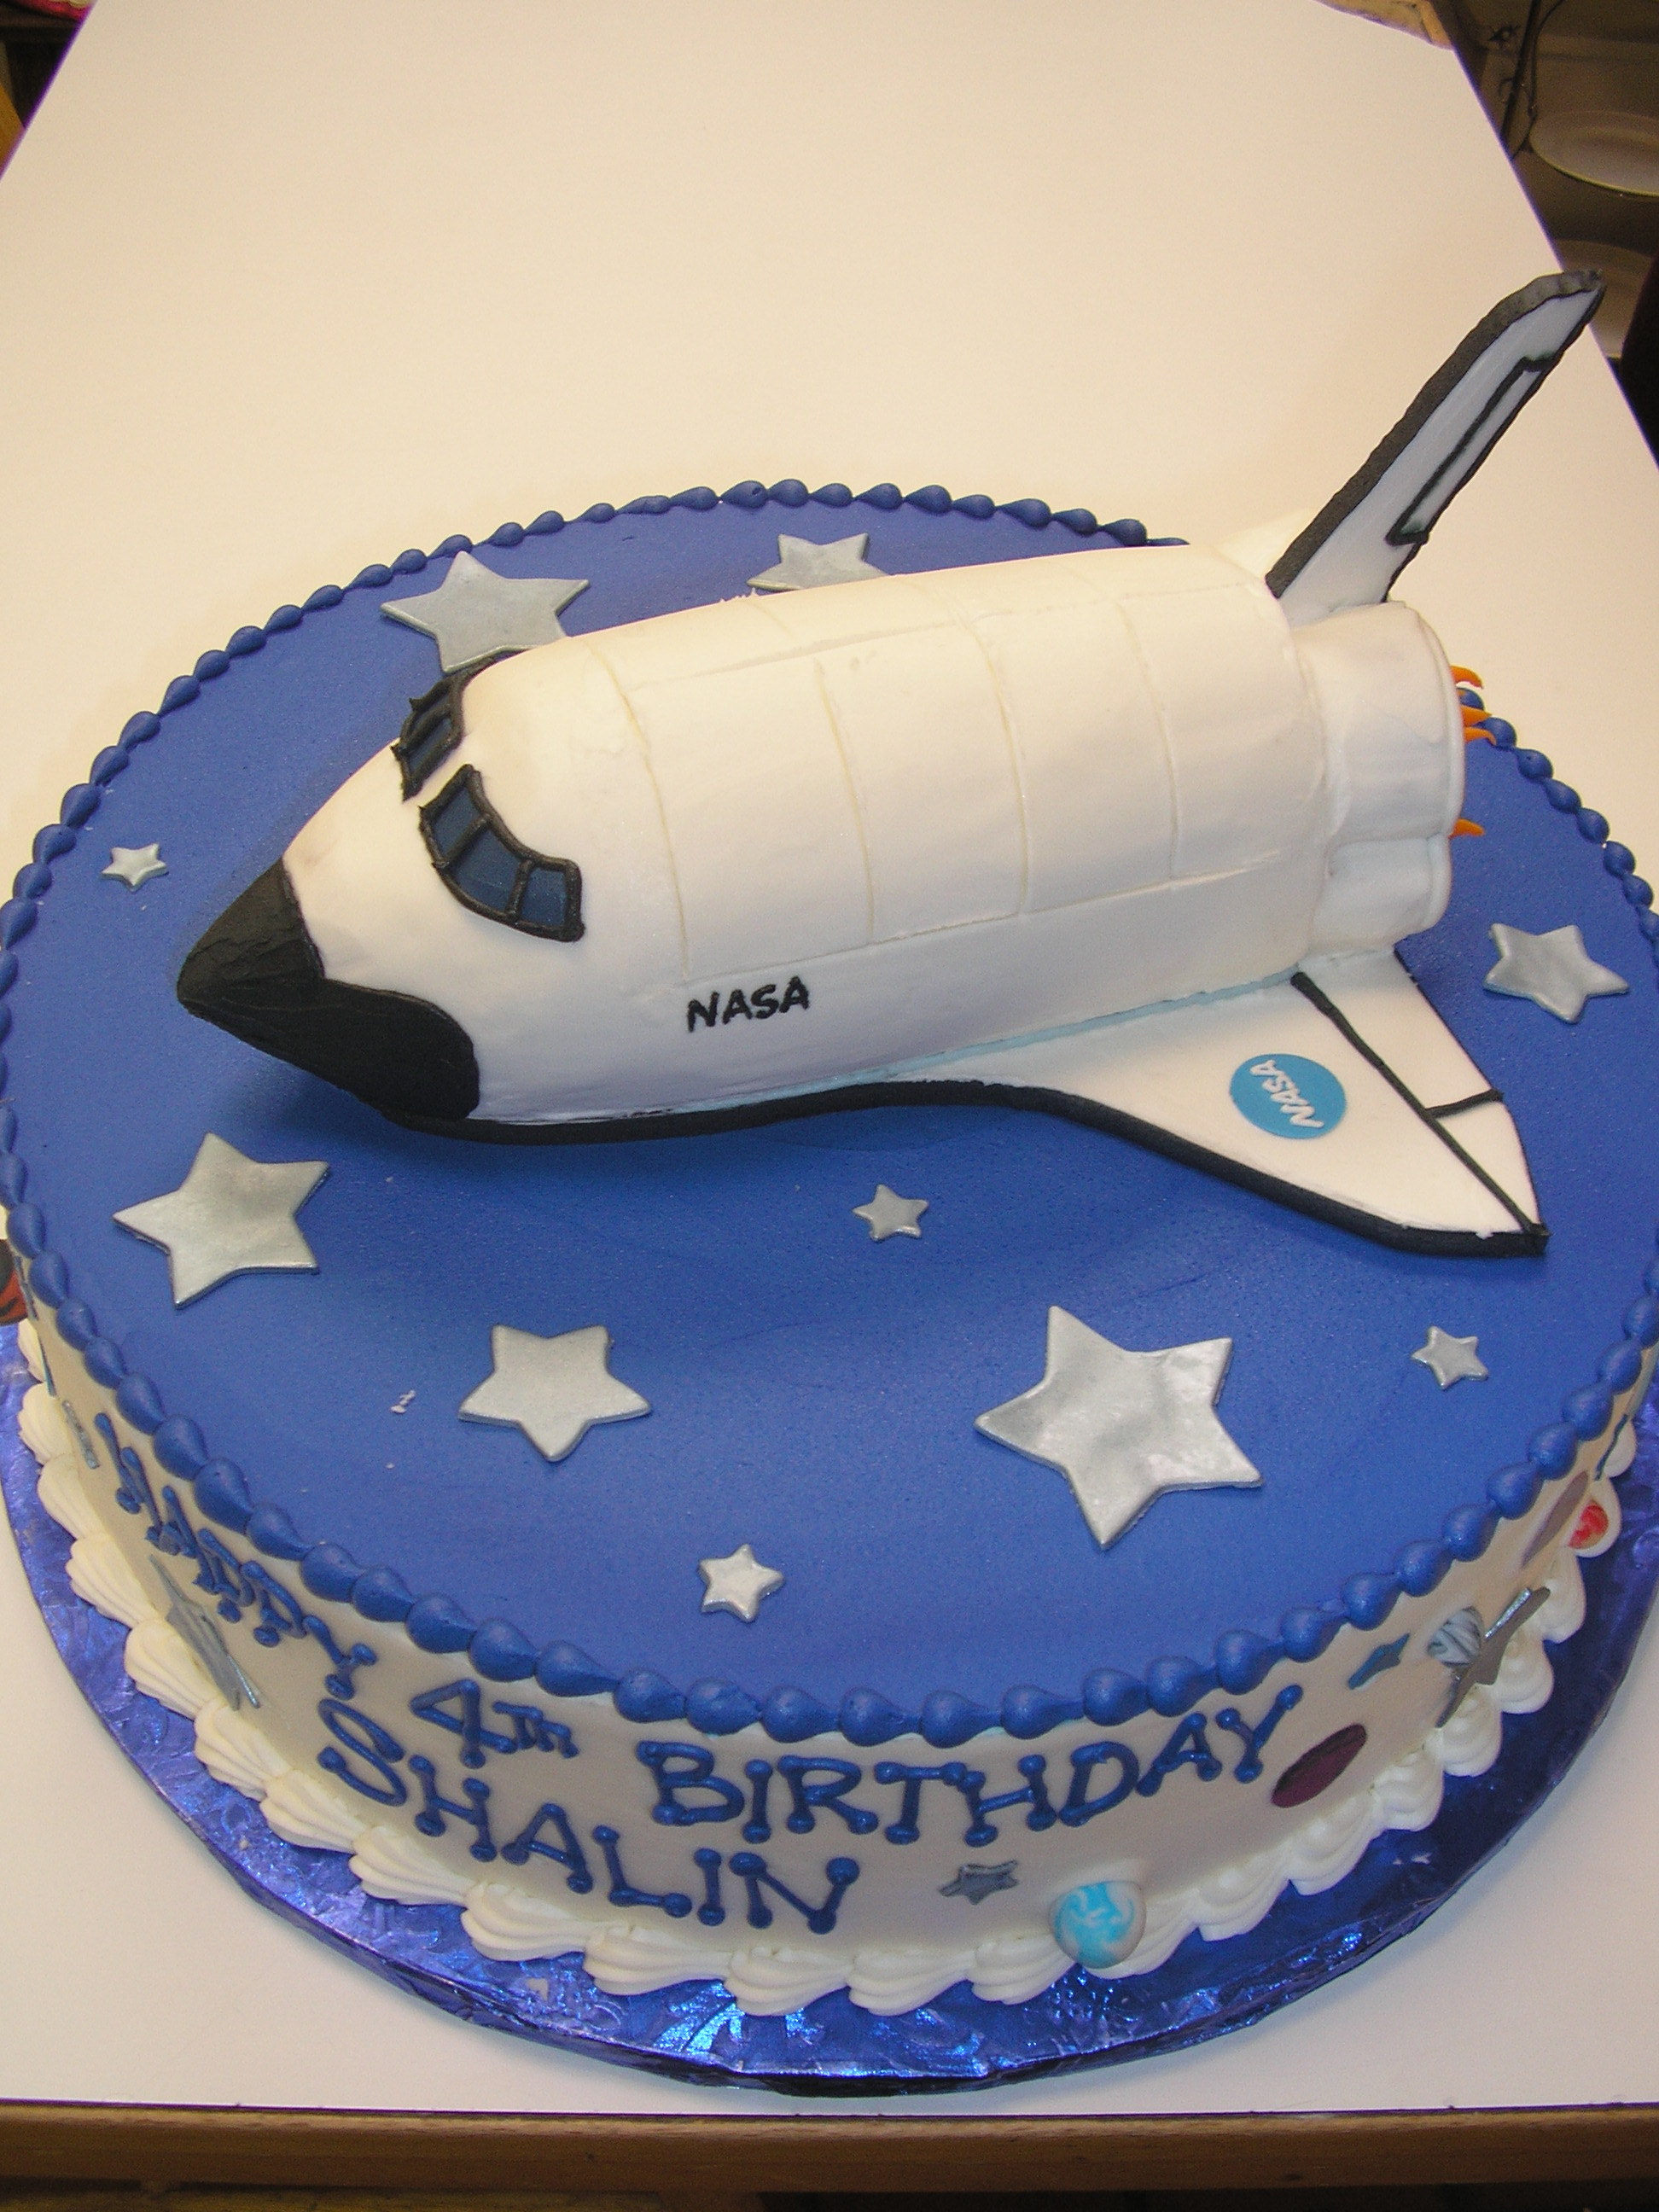 space shuttle cake, NASA cake, 3D space shuttle cake